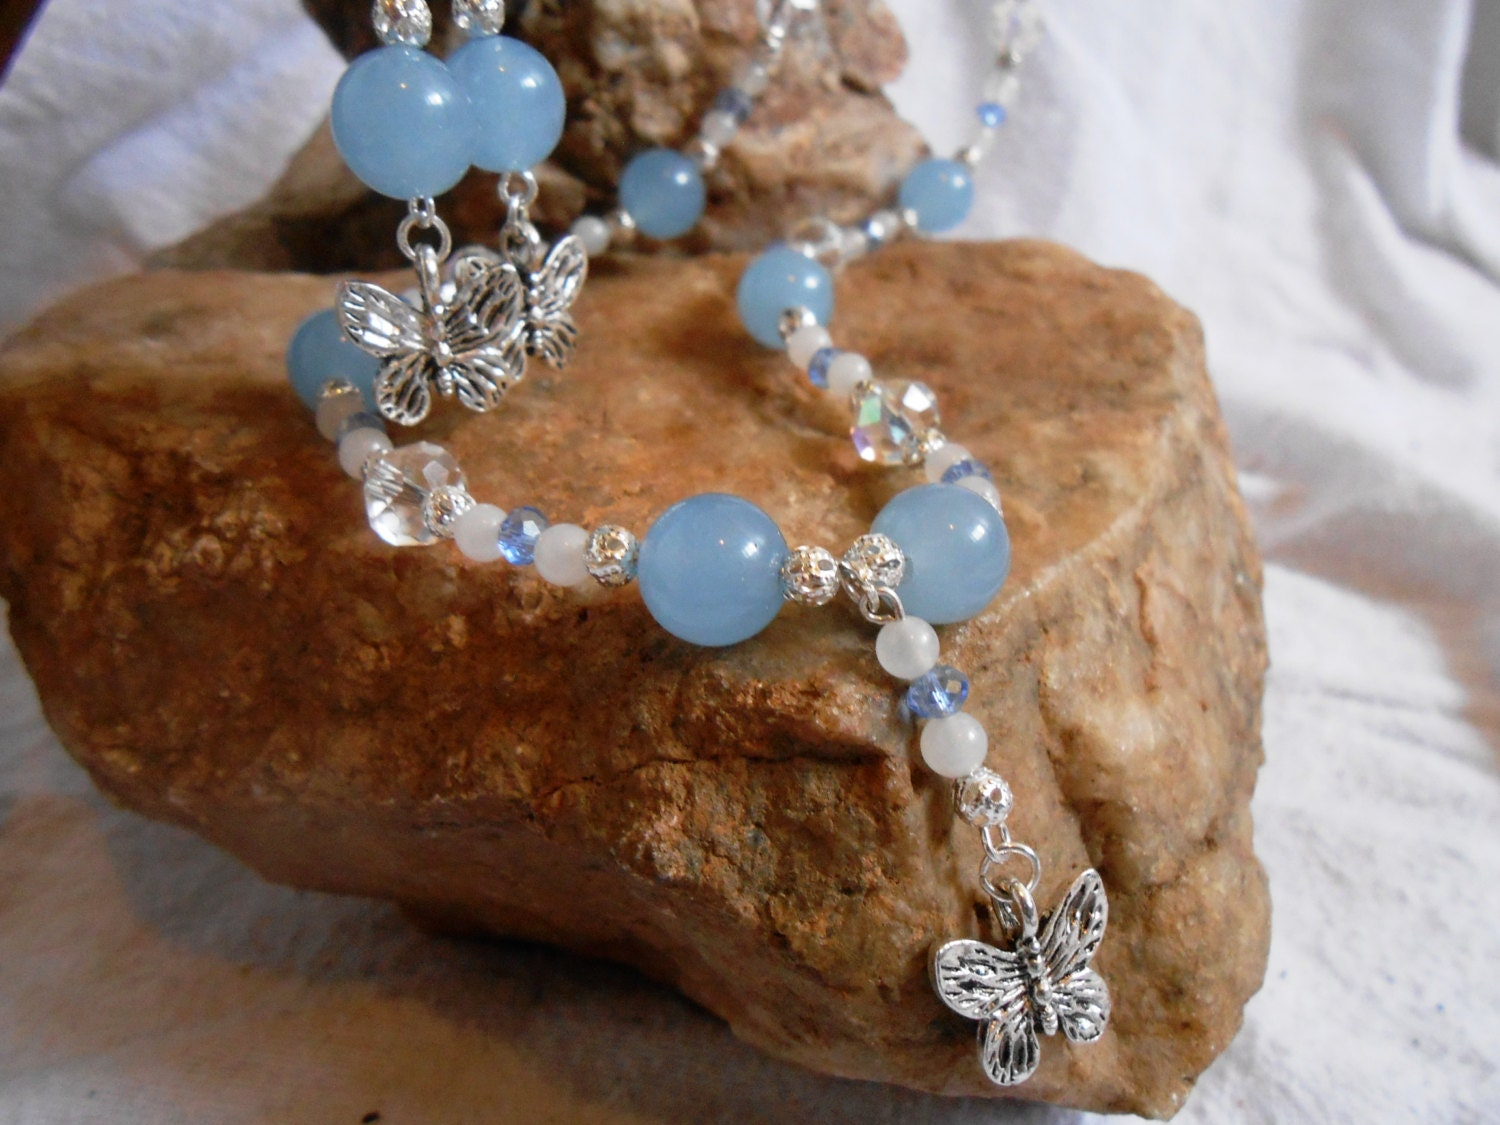 Beautiful Aquamarine, White Jade, Silver Butterfly and Swarovski Crystal Jewlery Set, Necklace and Earrings, Handmade, OOAK - FaerieTeaAndTreasure